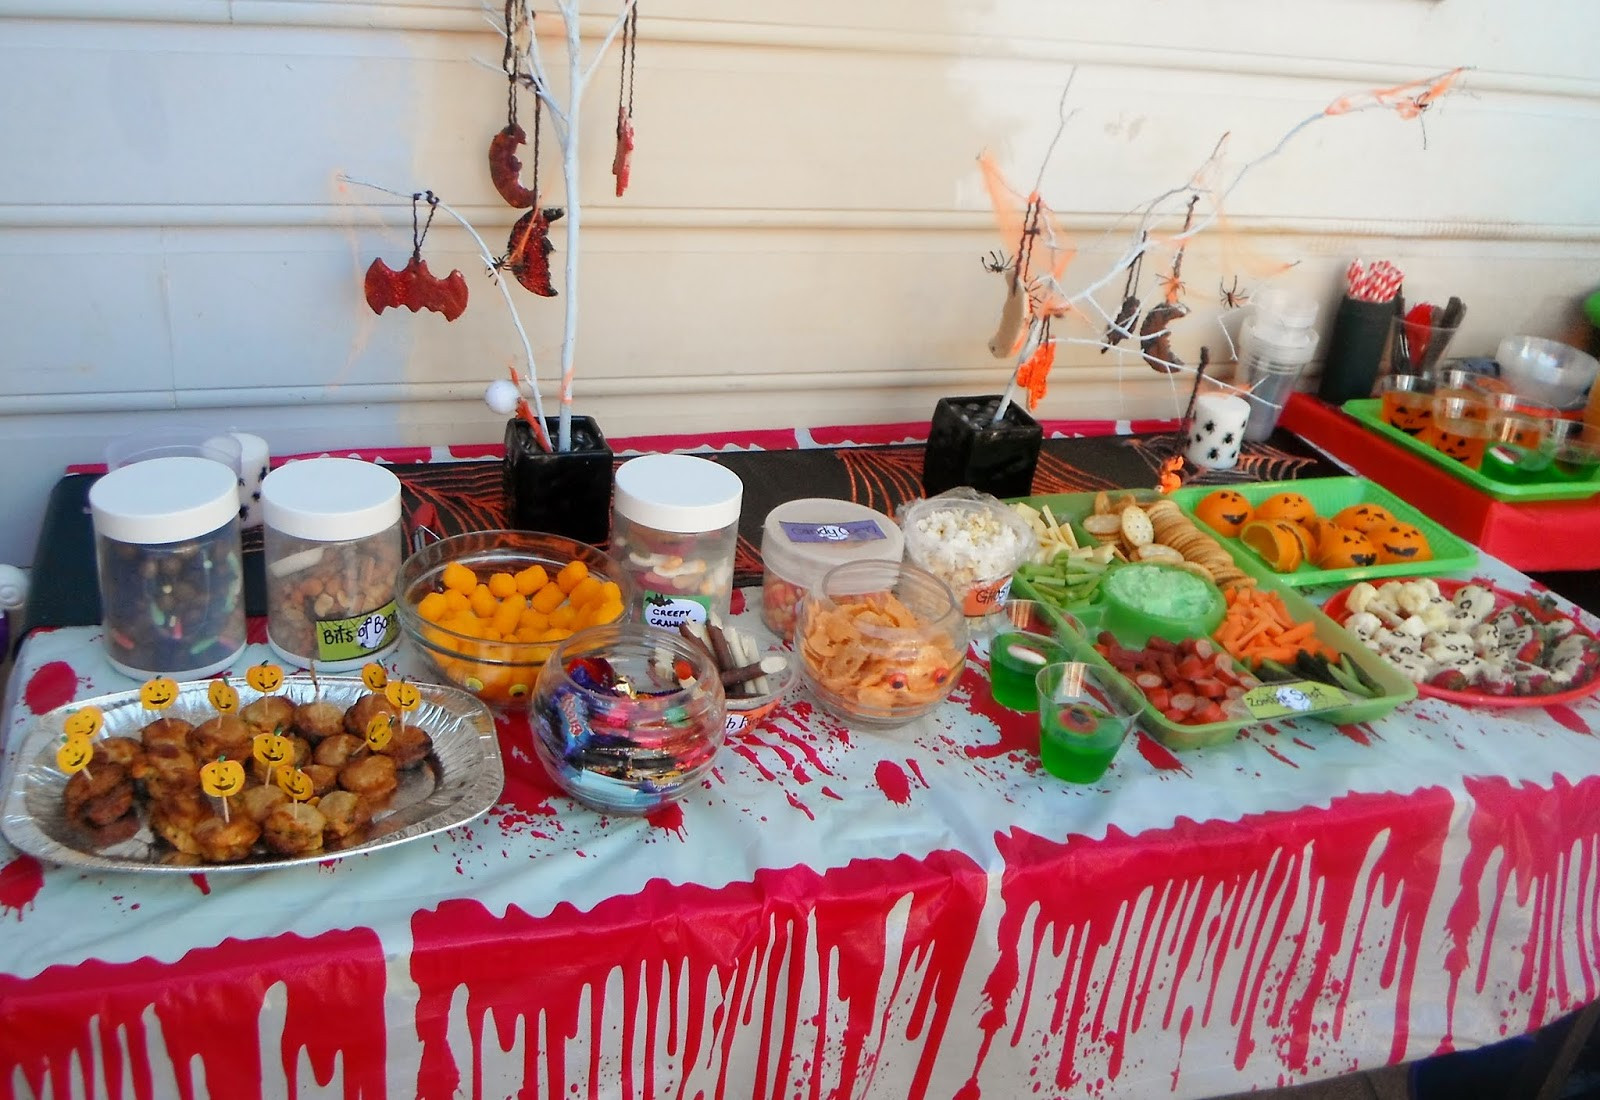 Halloween Food Ideas For Kids Party  Adventures at home with Mum Halloween Party Food